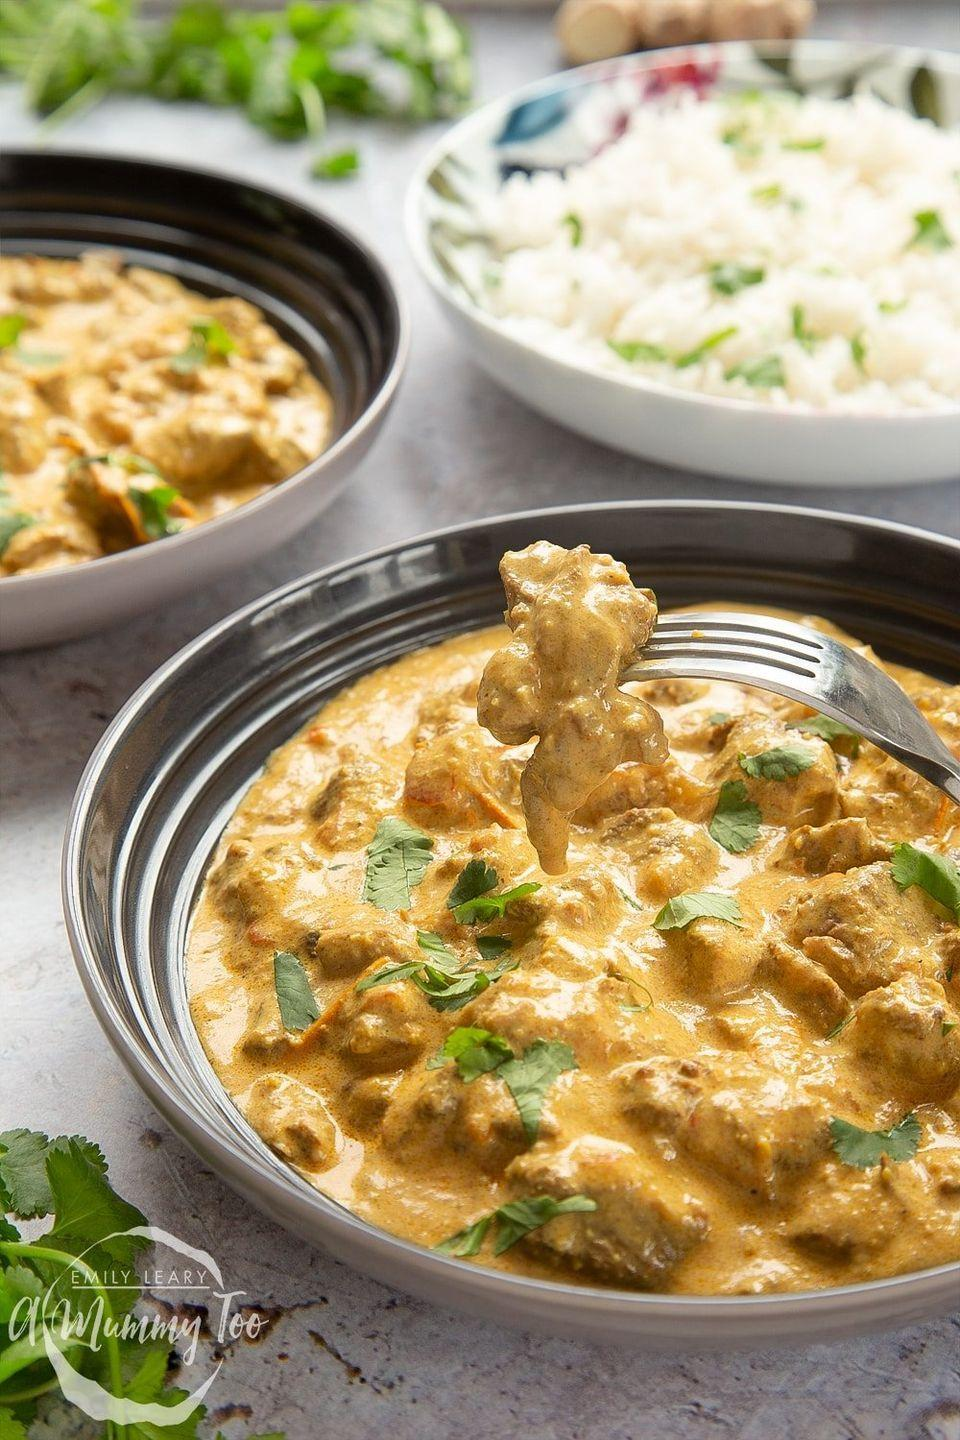 """<p>This slow-cooked lamb korma recipe is deliciously creamy, slightly sweet, and filled with melt-in-the-mouth lamb. </p><p>Get the <a href=""""https://www.amummytoo.co.uk/slow-cooked-melt-mouth-lamb-korma/"""" rel=""""nofollow noopener"""" target=""""_blank"""" data-ylk=""""slk:Lamb Korma"""" class=""""link rapid-noclick-resp"""">Lamb Korma</a> recipe.</p><p>Recipe from <a href=""""https://www.amummytoo.co.uk/"""" rel=""""nofollow noopener"""" target=""""_blank"""" data-ylk=""""slk:A Mummy Too"""" class=""""link rapid-noclick-resp"""">A Mummy Too</a>.</p>"""